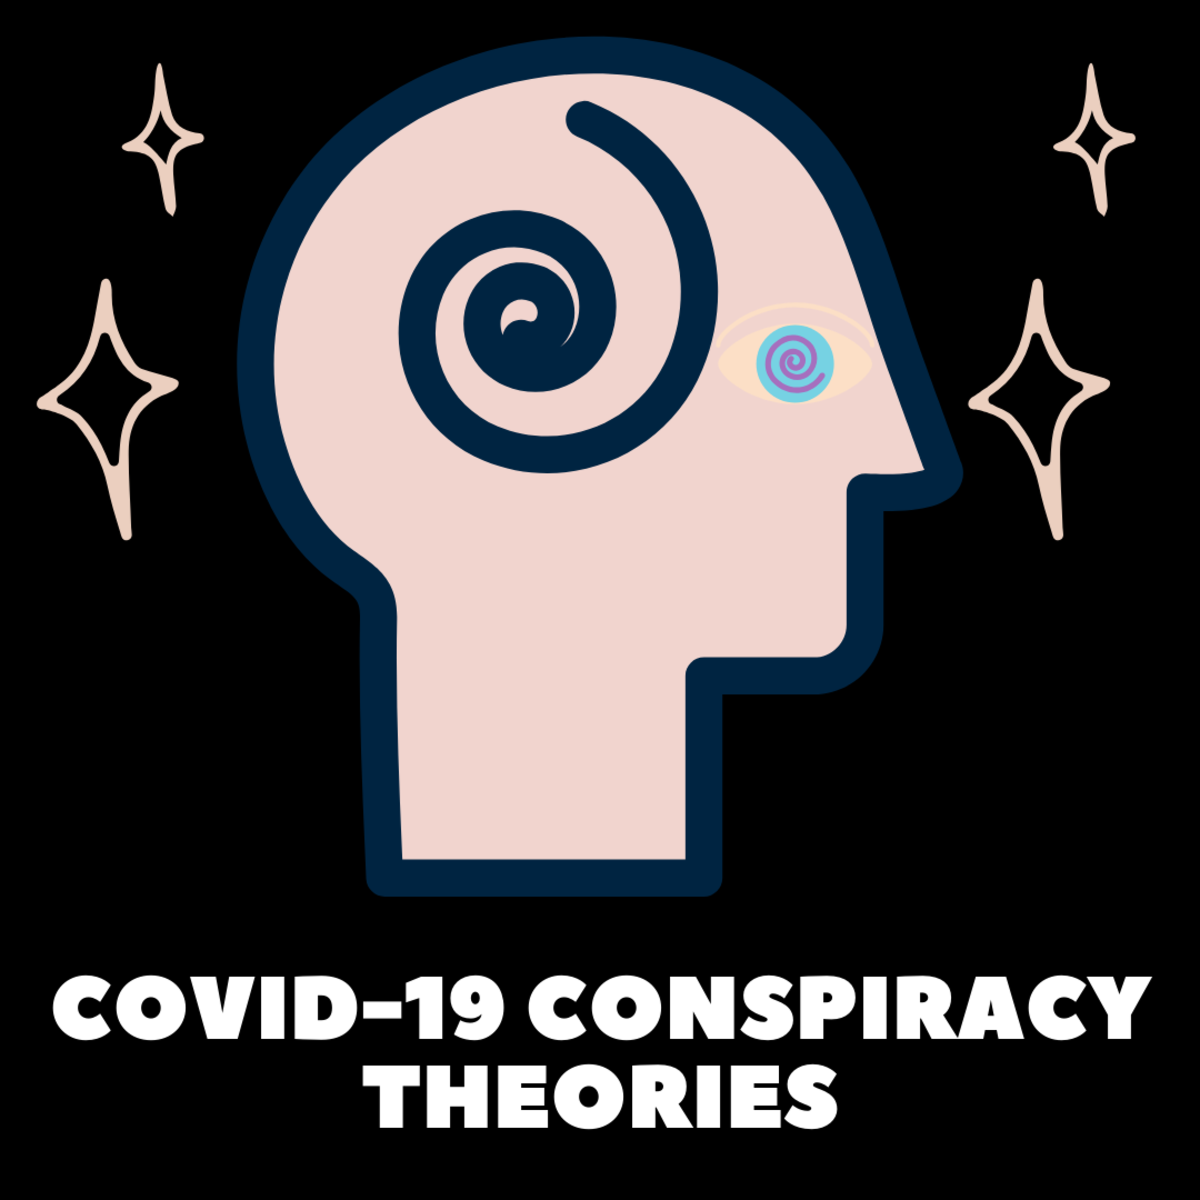 COVID-19 Conspiracy Theories and Why They're False